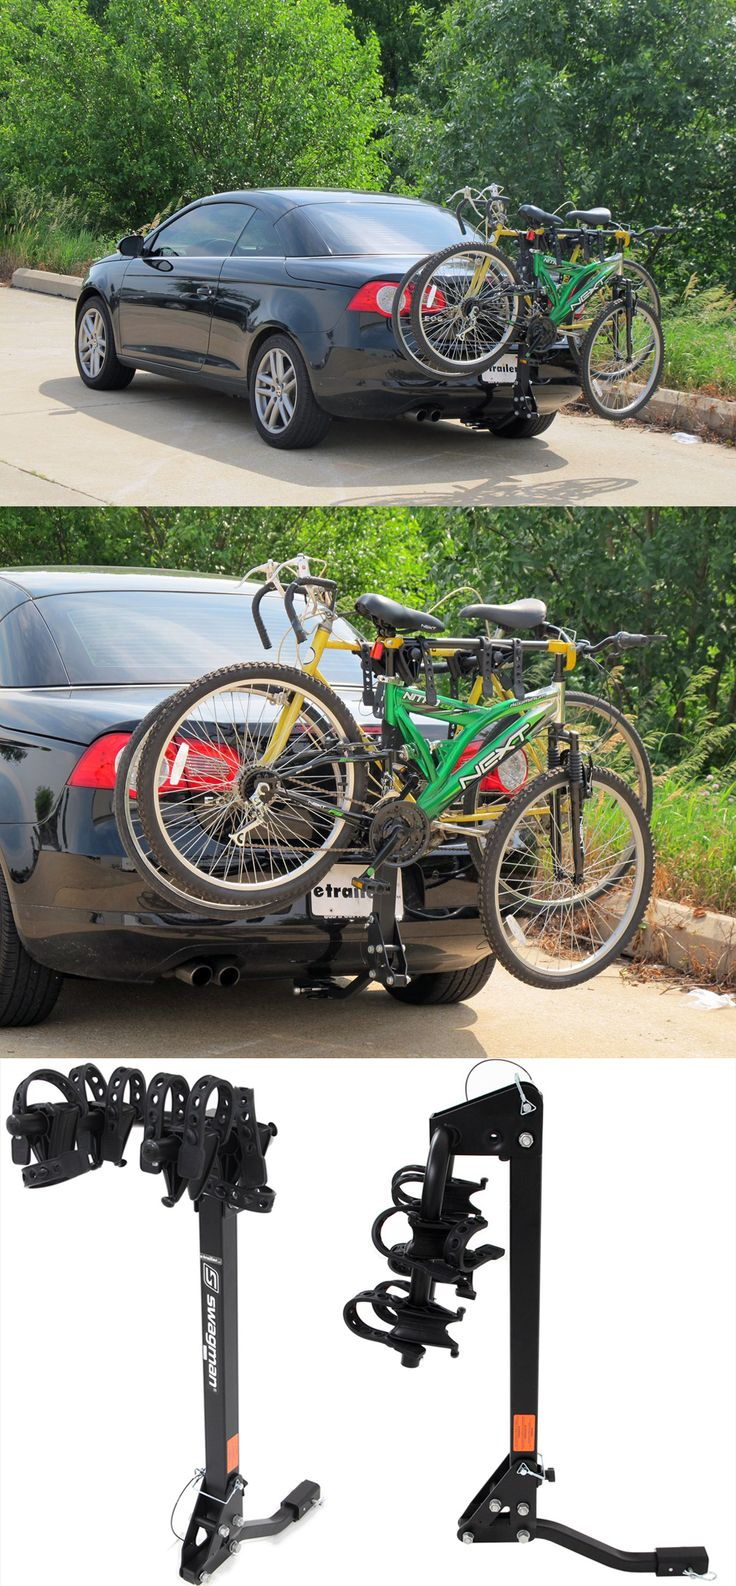 For carrying one or two bikes to and from the biking or cycling destination! The swagman trailhead bike rack is a necessity when it comes to car accessories for bike lovers. Features sturdy straps that secure almost any size bike frame to the cradles - the arms fold down for simple storage!